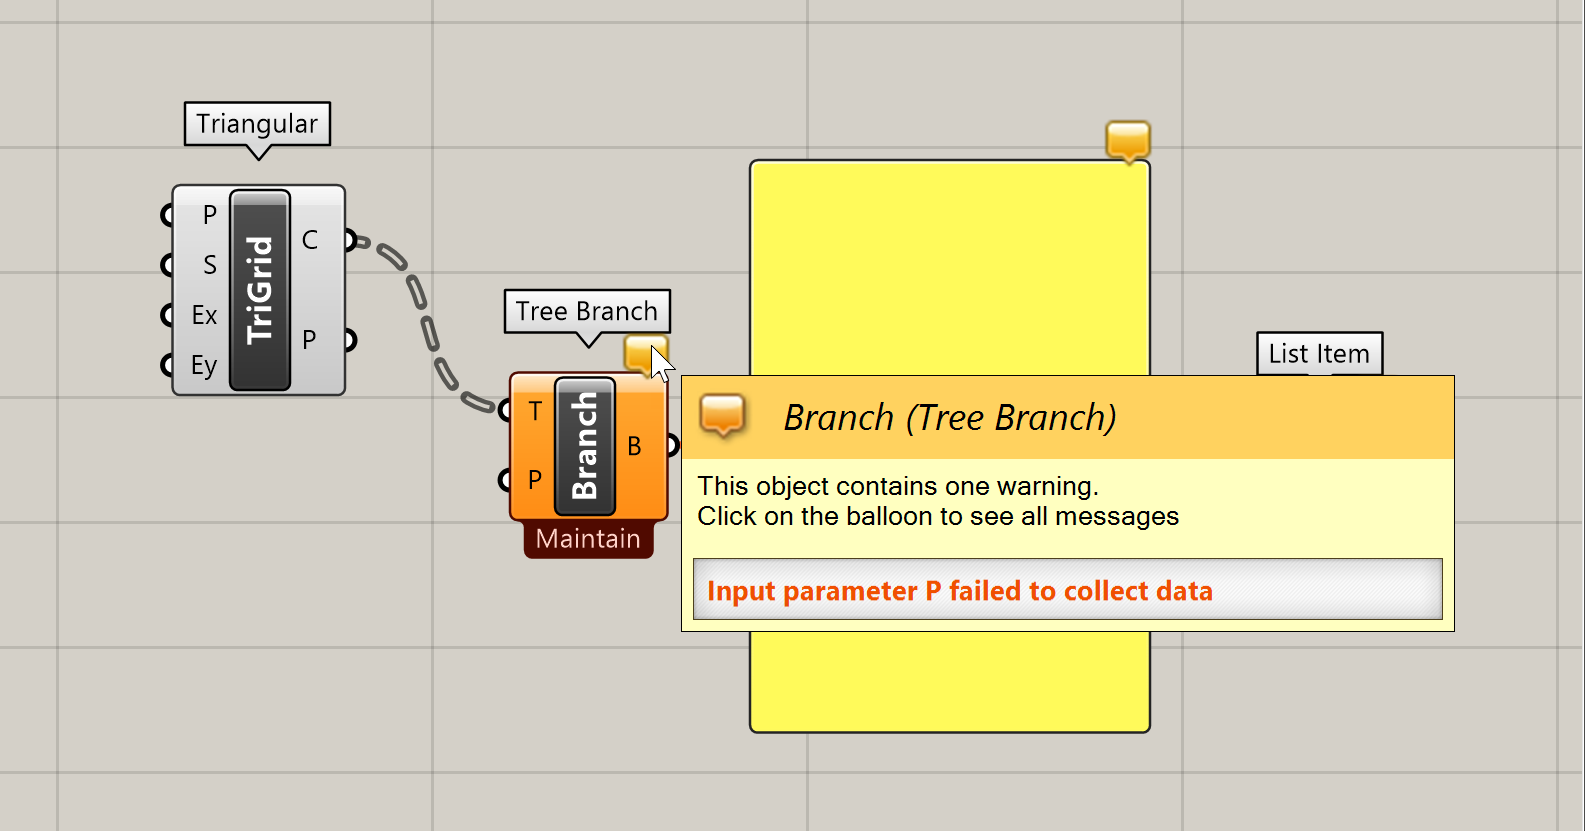 grasshopper,datatree,data,tree,branch,treebranch,retrievebranch,listitem,list,index,path,item,data management